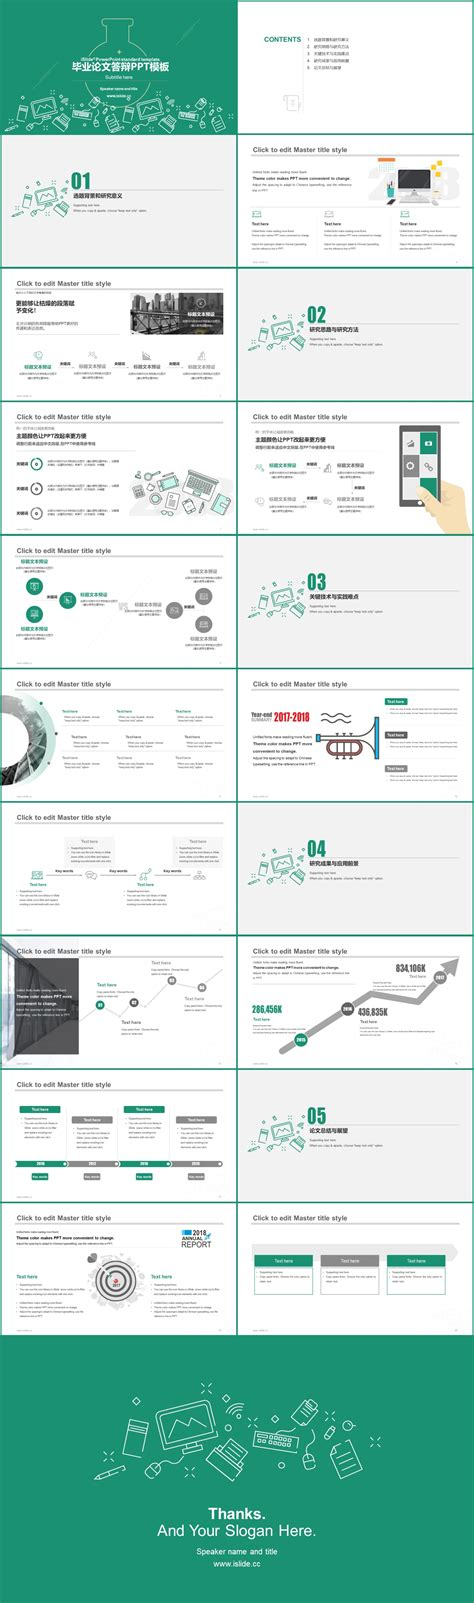 thesis defense presentation template ppt dissertation defense presentation template 21 slides